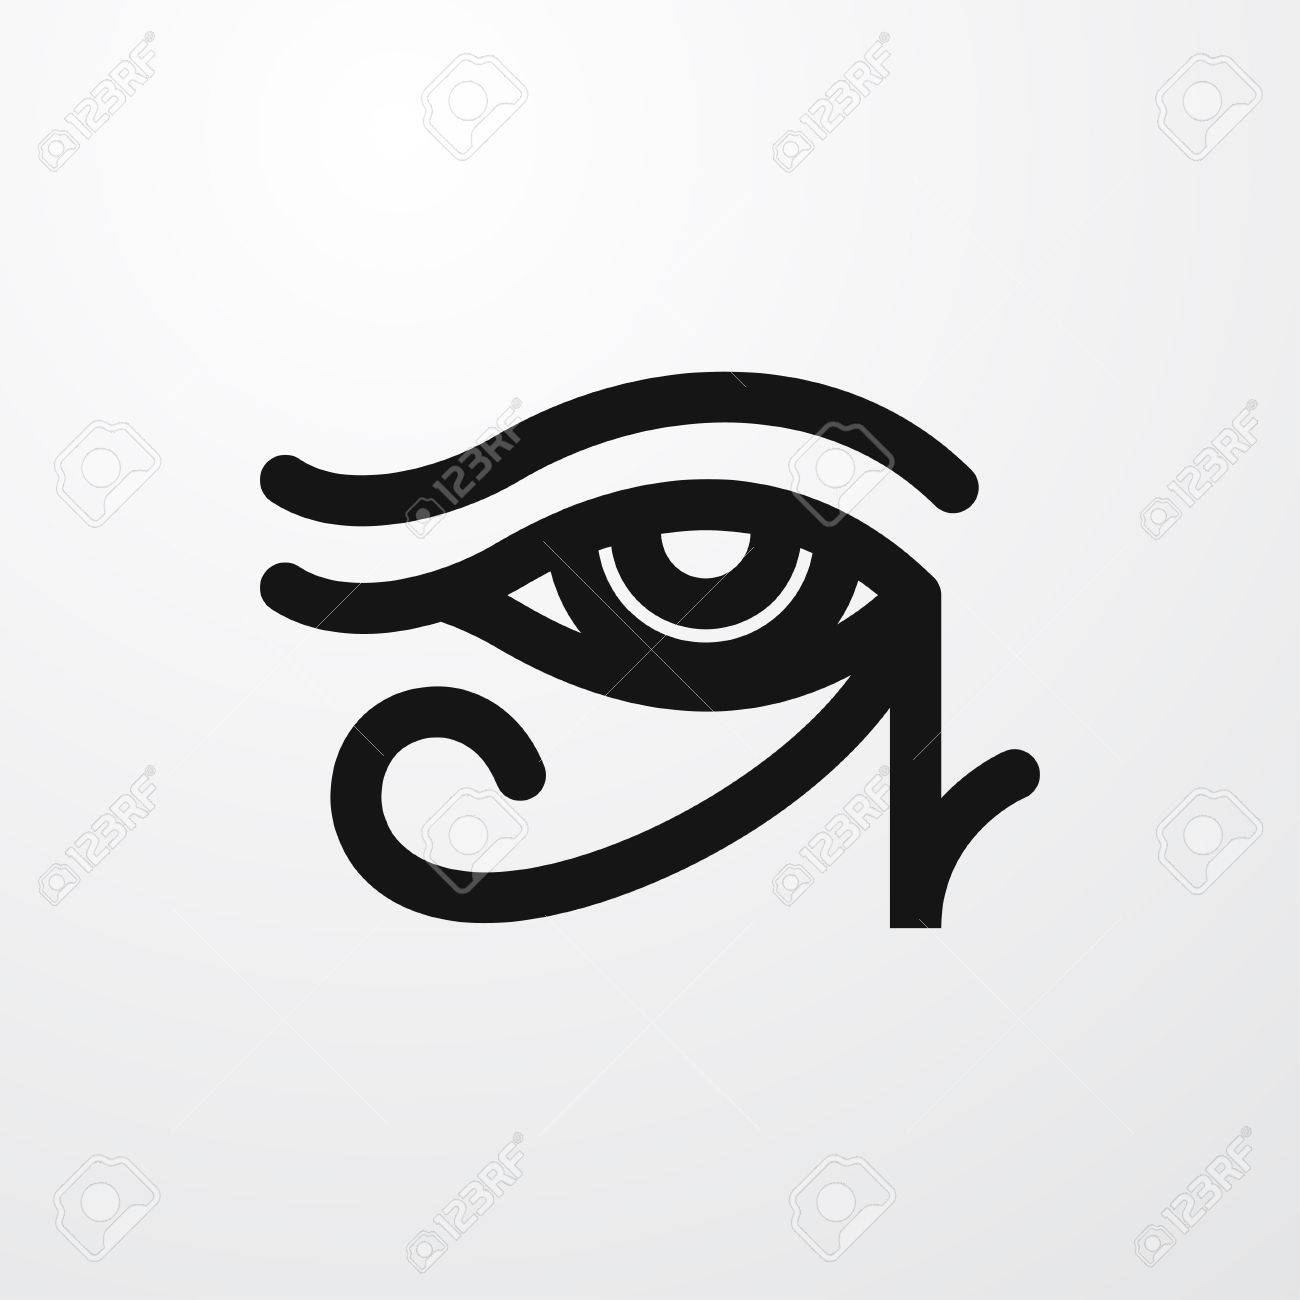 Egypt eye icon illustration isolated sign symbol royalty free egypt eye icon illustration isolated sign symbol stock vector 65360975 biocorpaavc Gallery